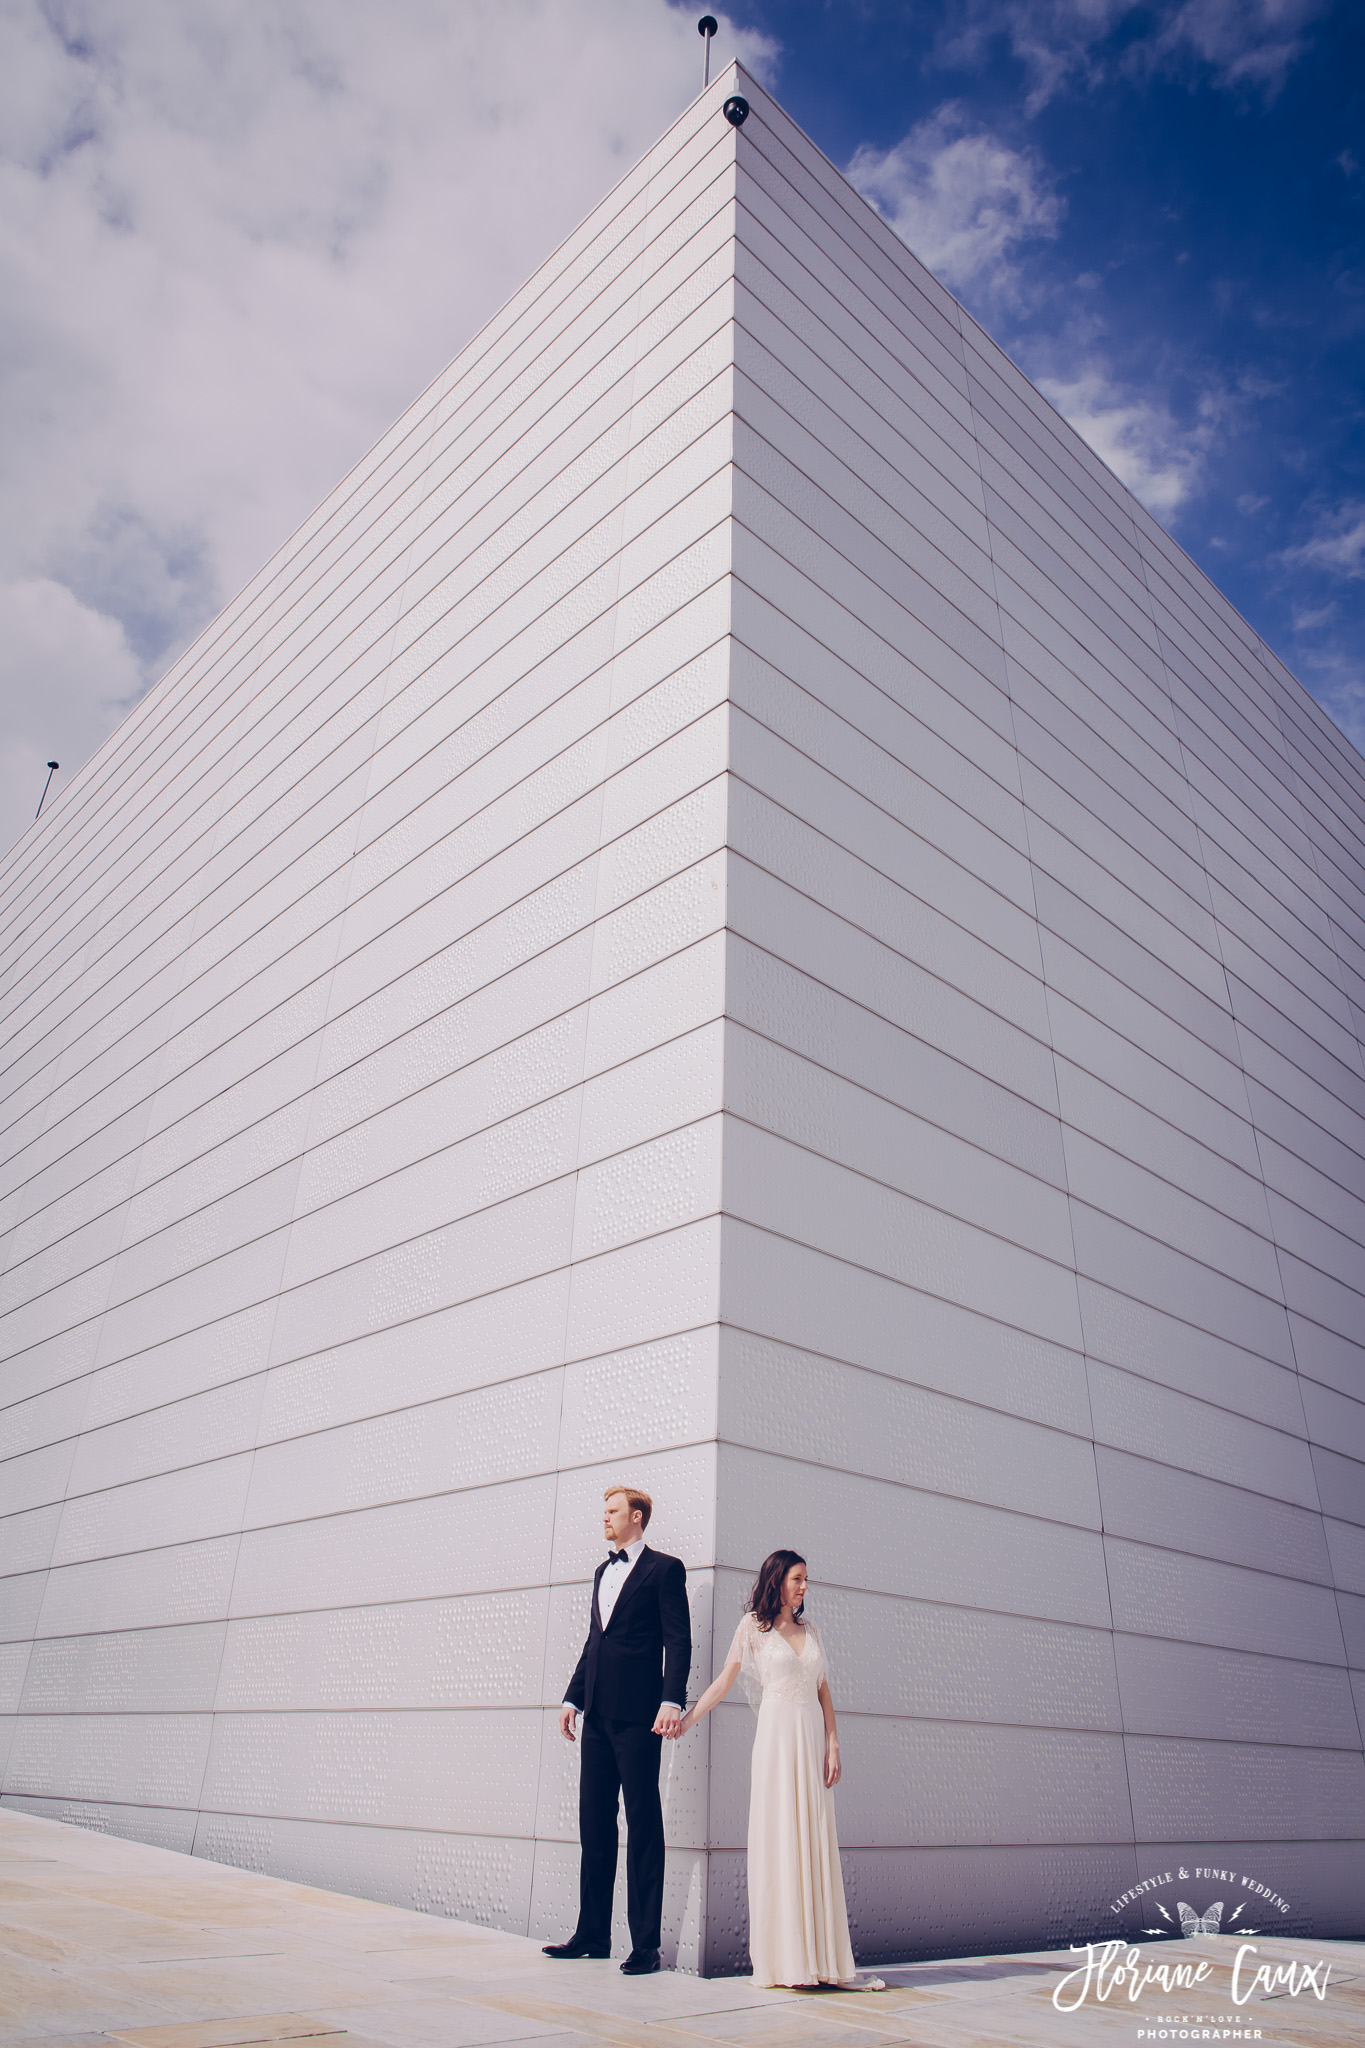 destination-wedding-photographer-oslo-norway-floriane-caux-67